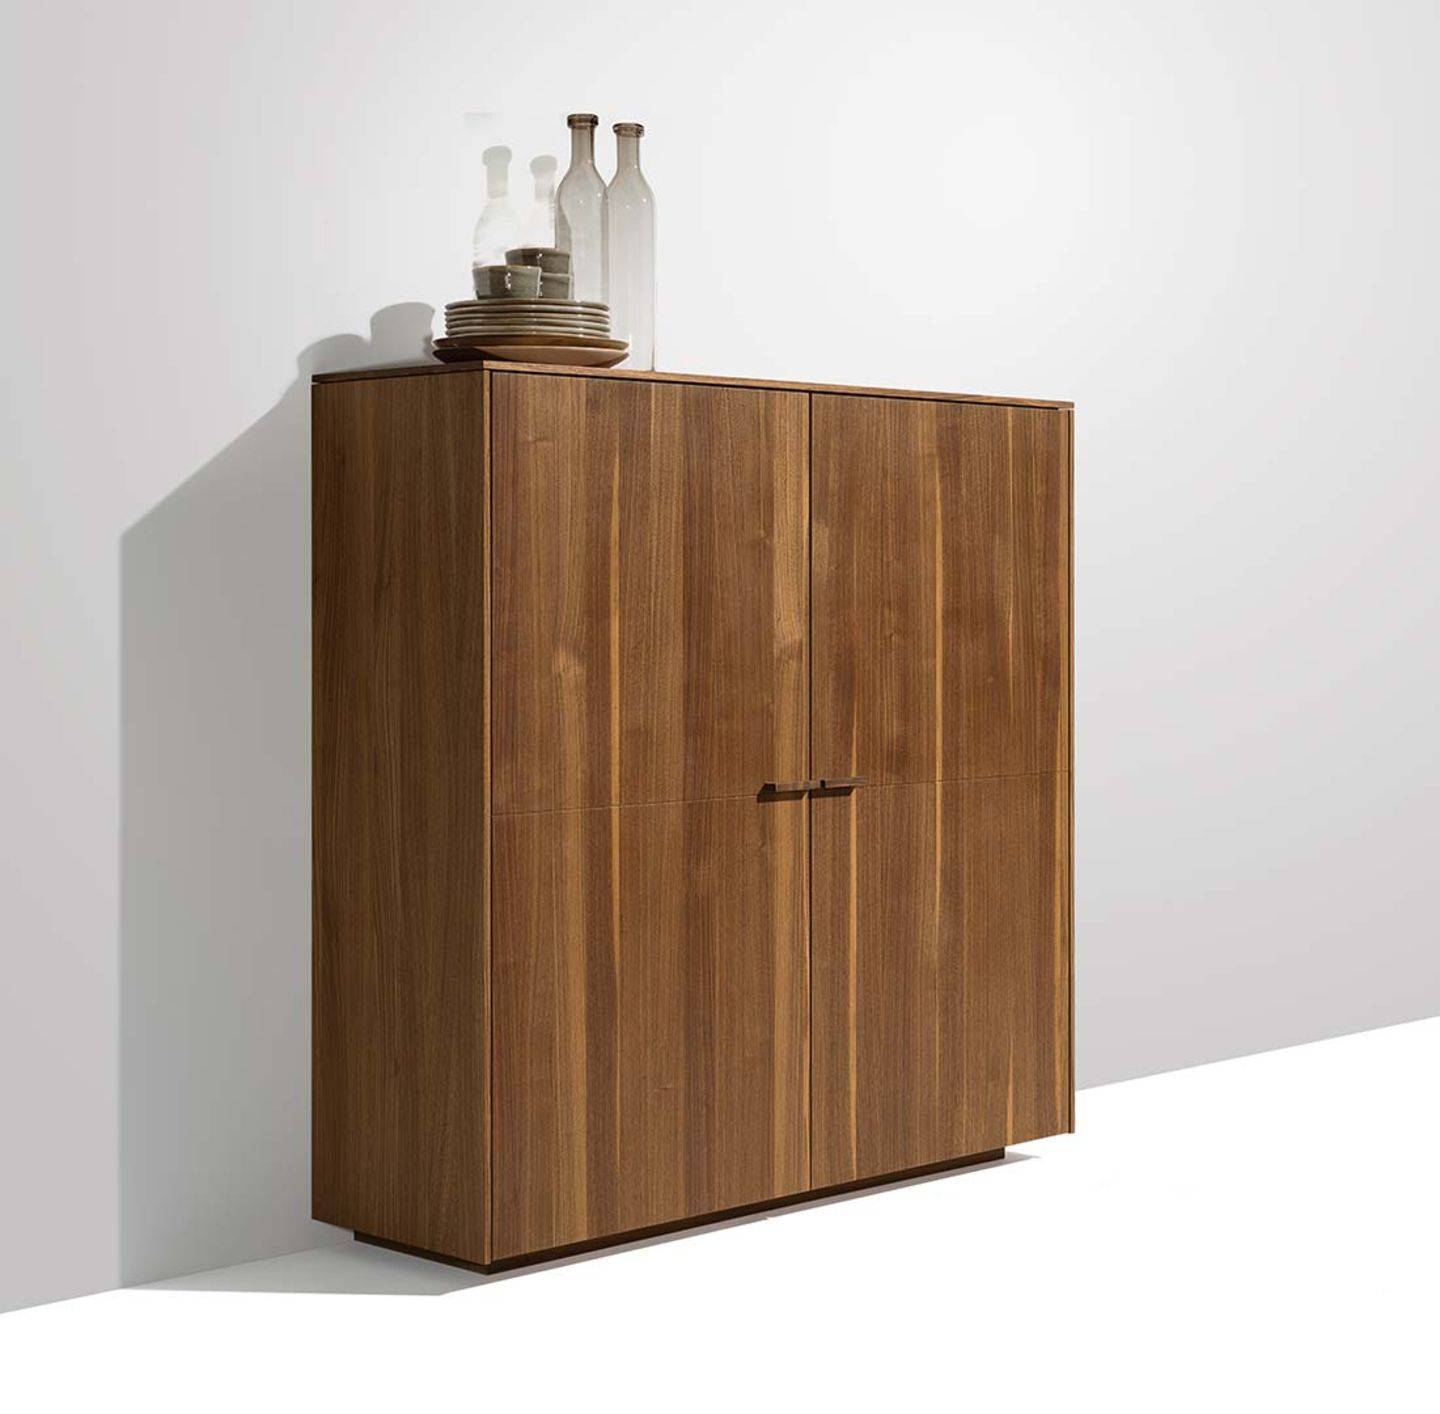 highboard filigno with wooden handles in walnut